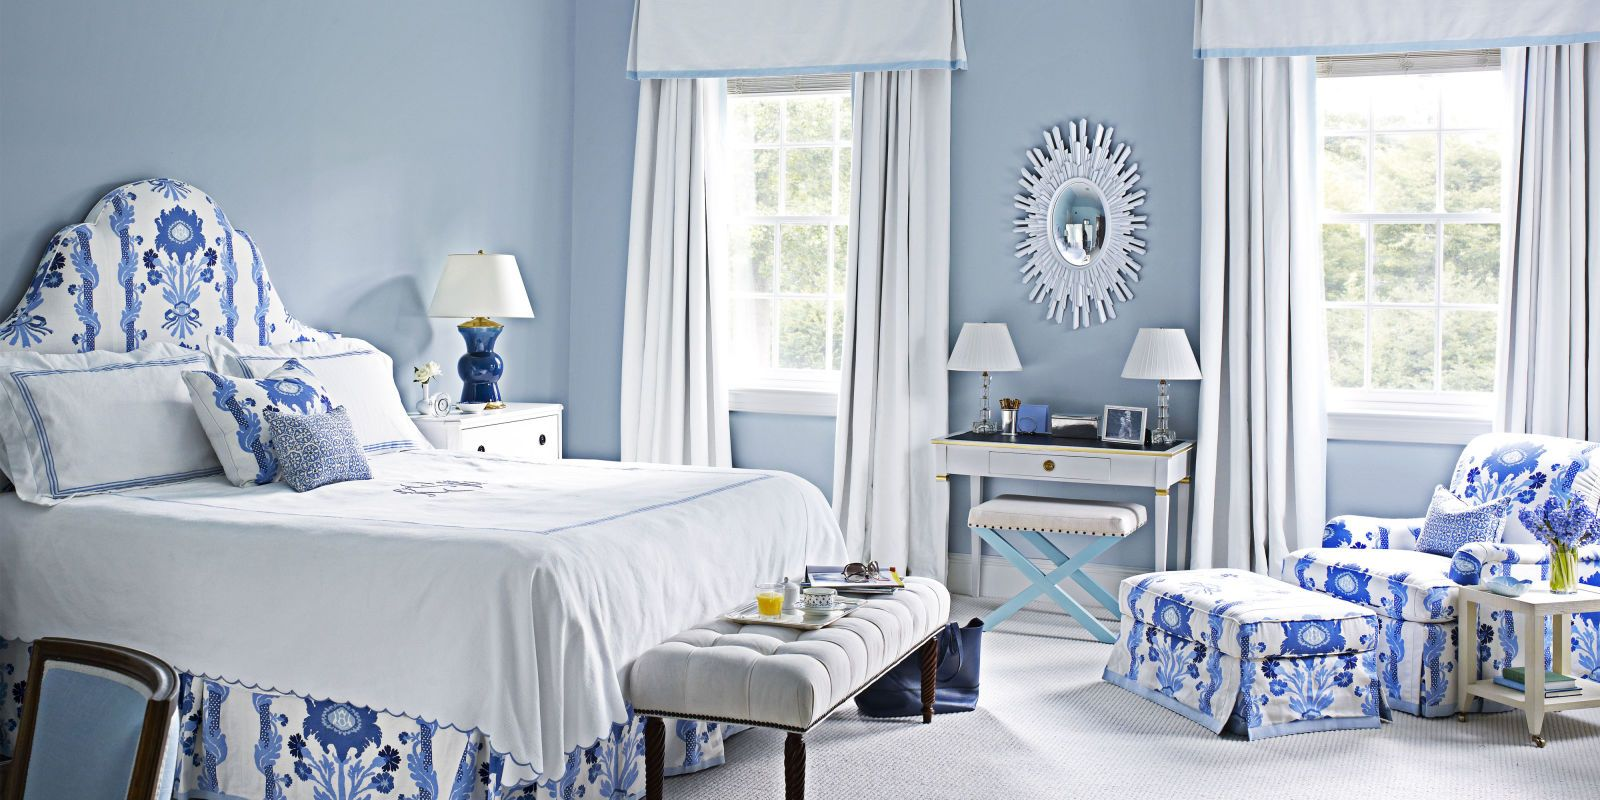 This Colonial Home Perfectly Balances Bold and Traditional Details on colonial bedroom art, colonial rugs, colonial architecture, colonial bedroom furnishings, colonial bedroom style, colonial bathroom, colonial bedroom sets, colonial general, colonial beds, colonial mirrors, colonial master bedroom, colonial bedroom colors, colonial kitchen, colonial interior,